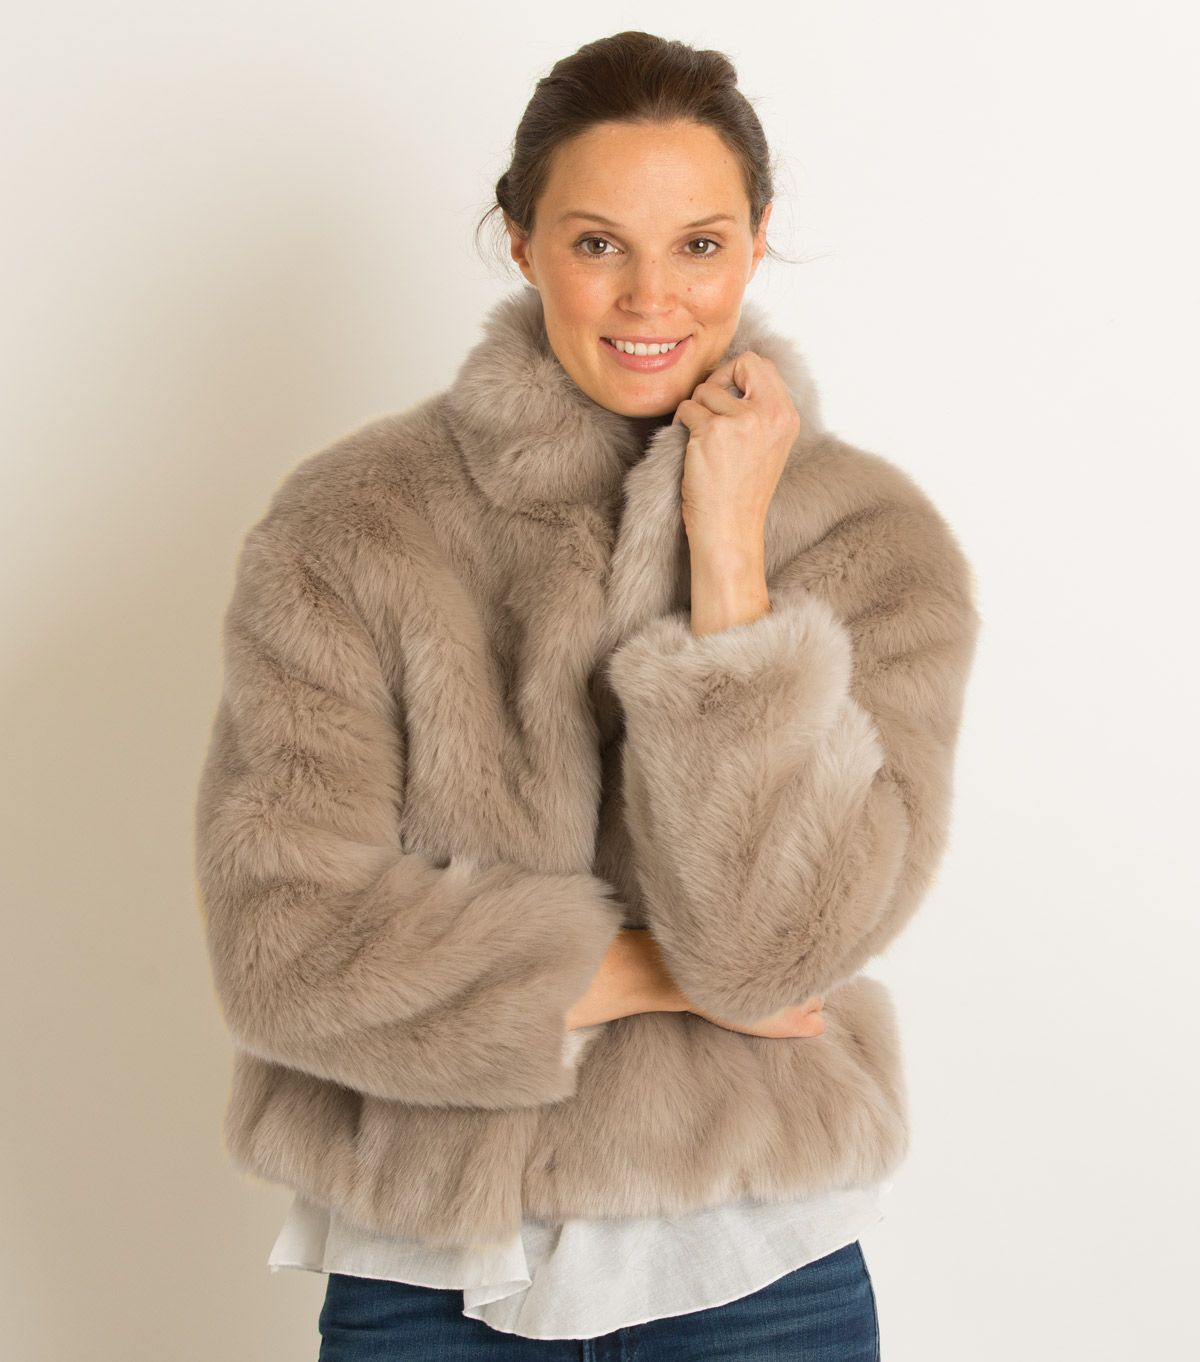 e4480611d Faux Fur Jacket by Ruby & Ed | Fawn | Holiday Inspiration | Faux fur ...